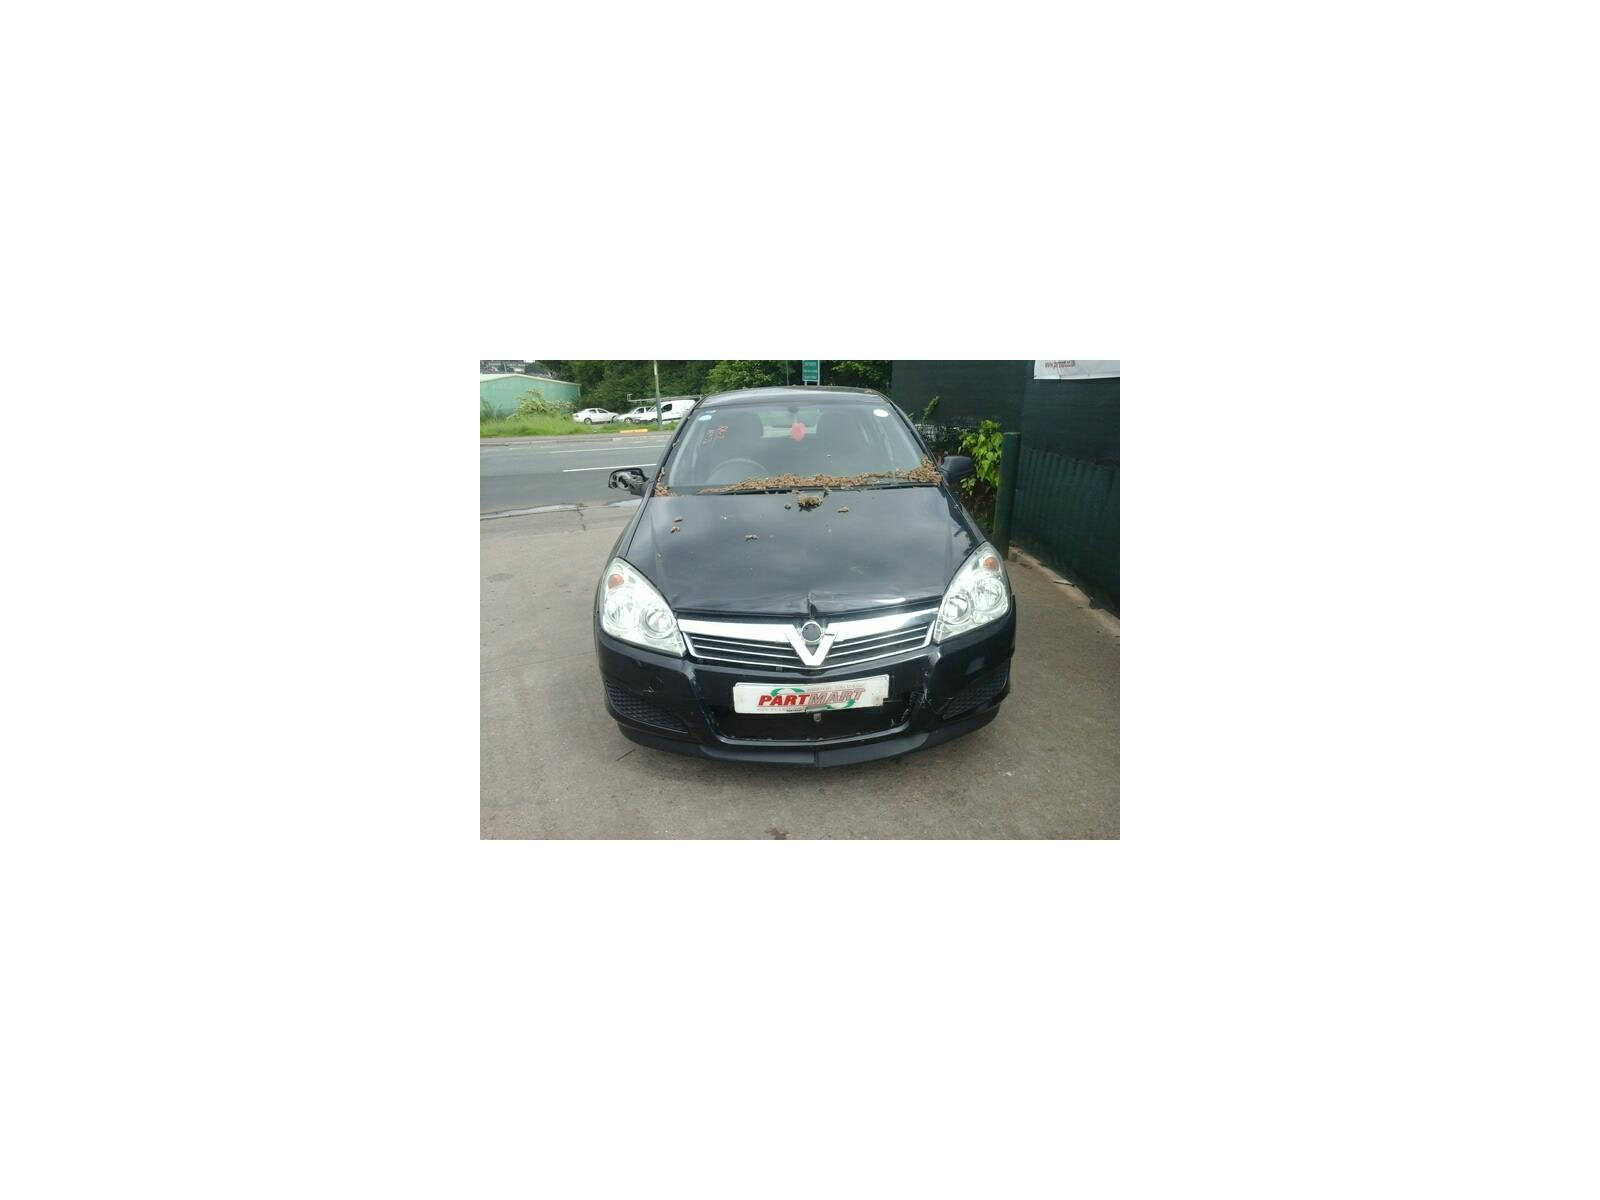 2008 Vauxhall Astra 5 Door Hatchback